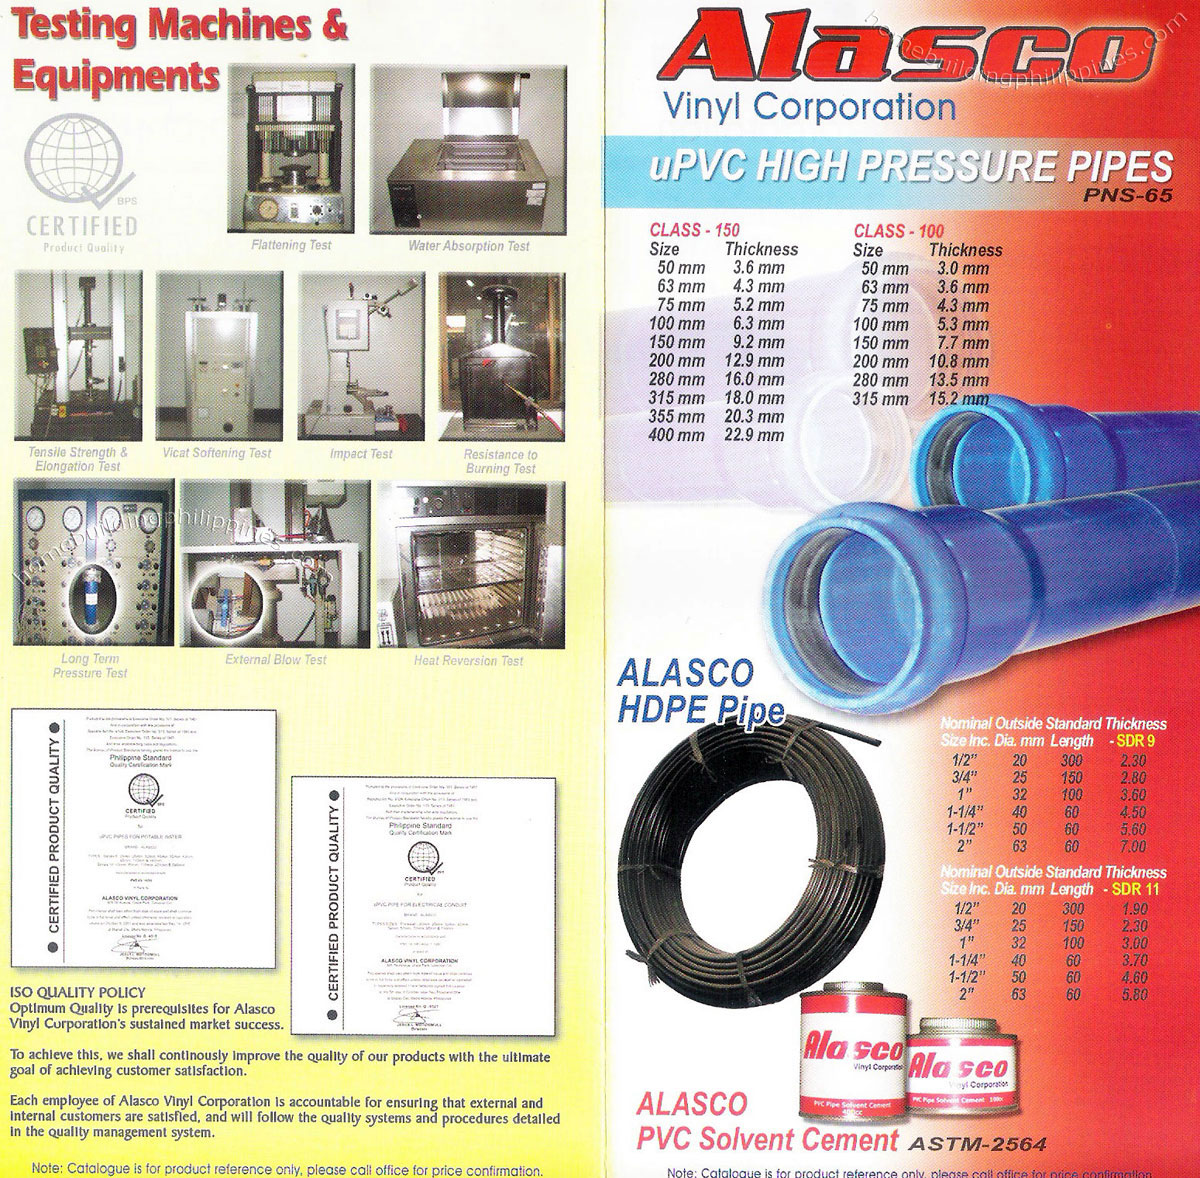 Testing Machines and Equipment, uPVC High Pressure Pipes